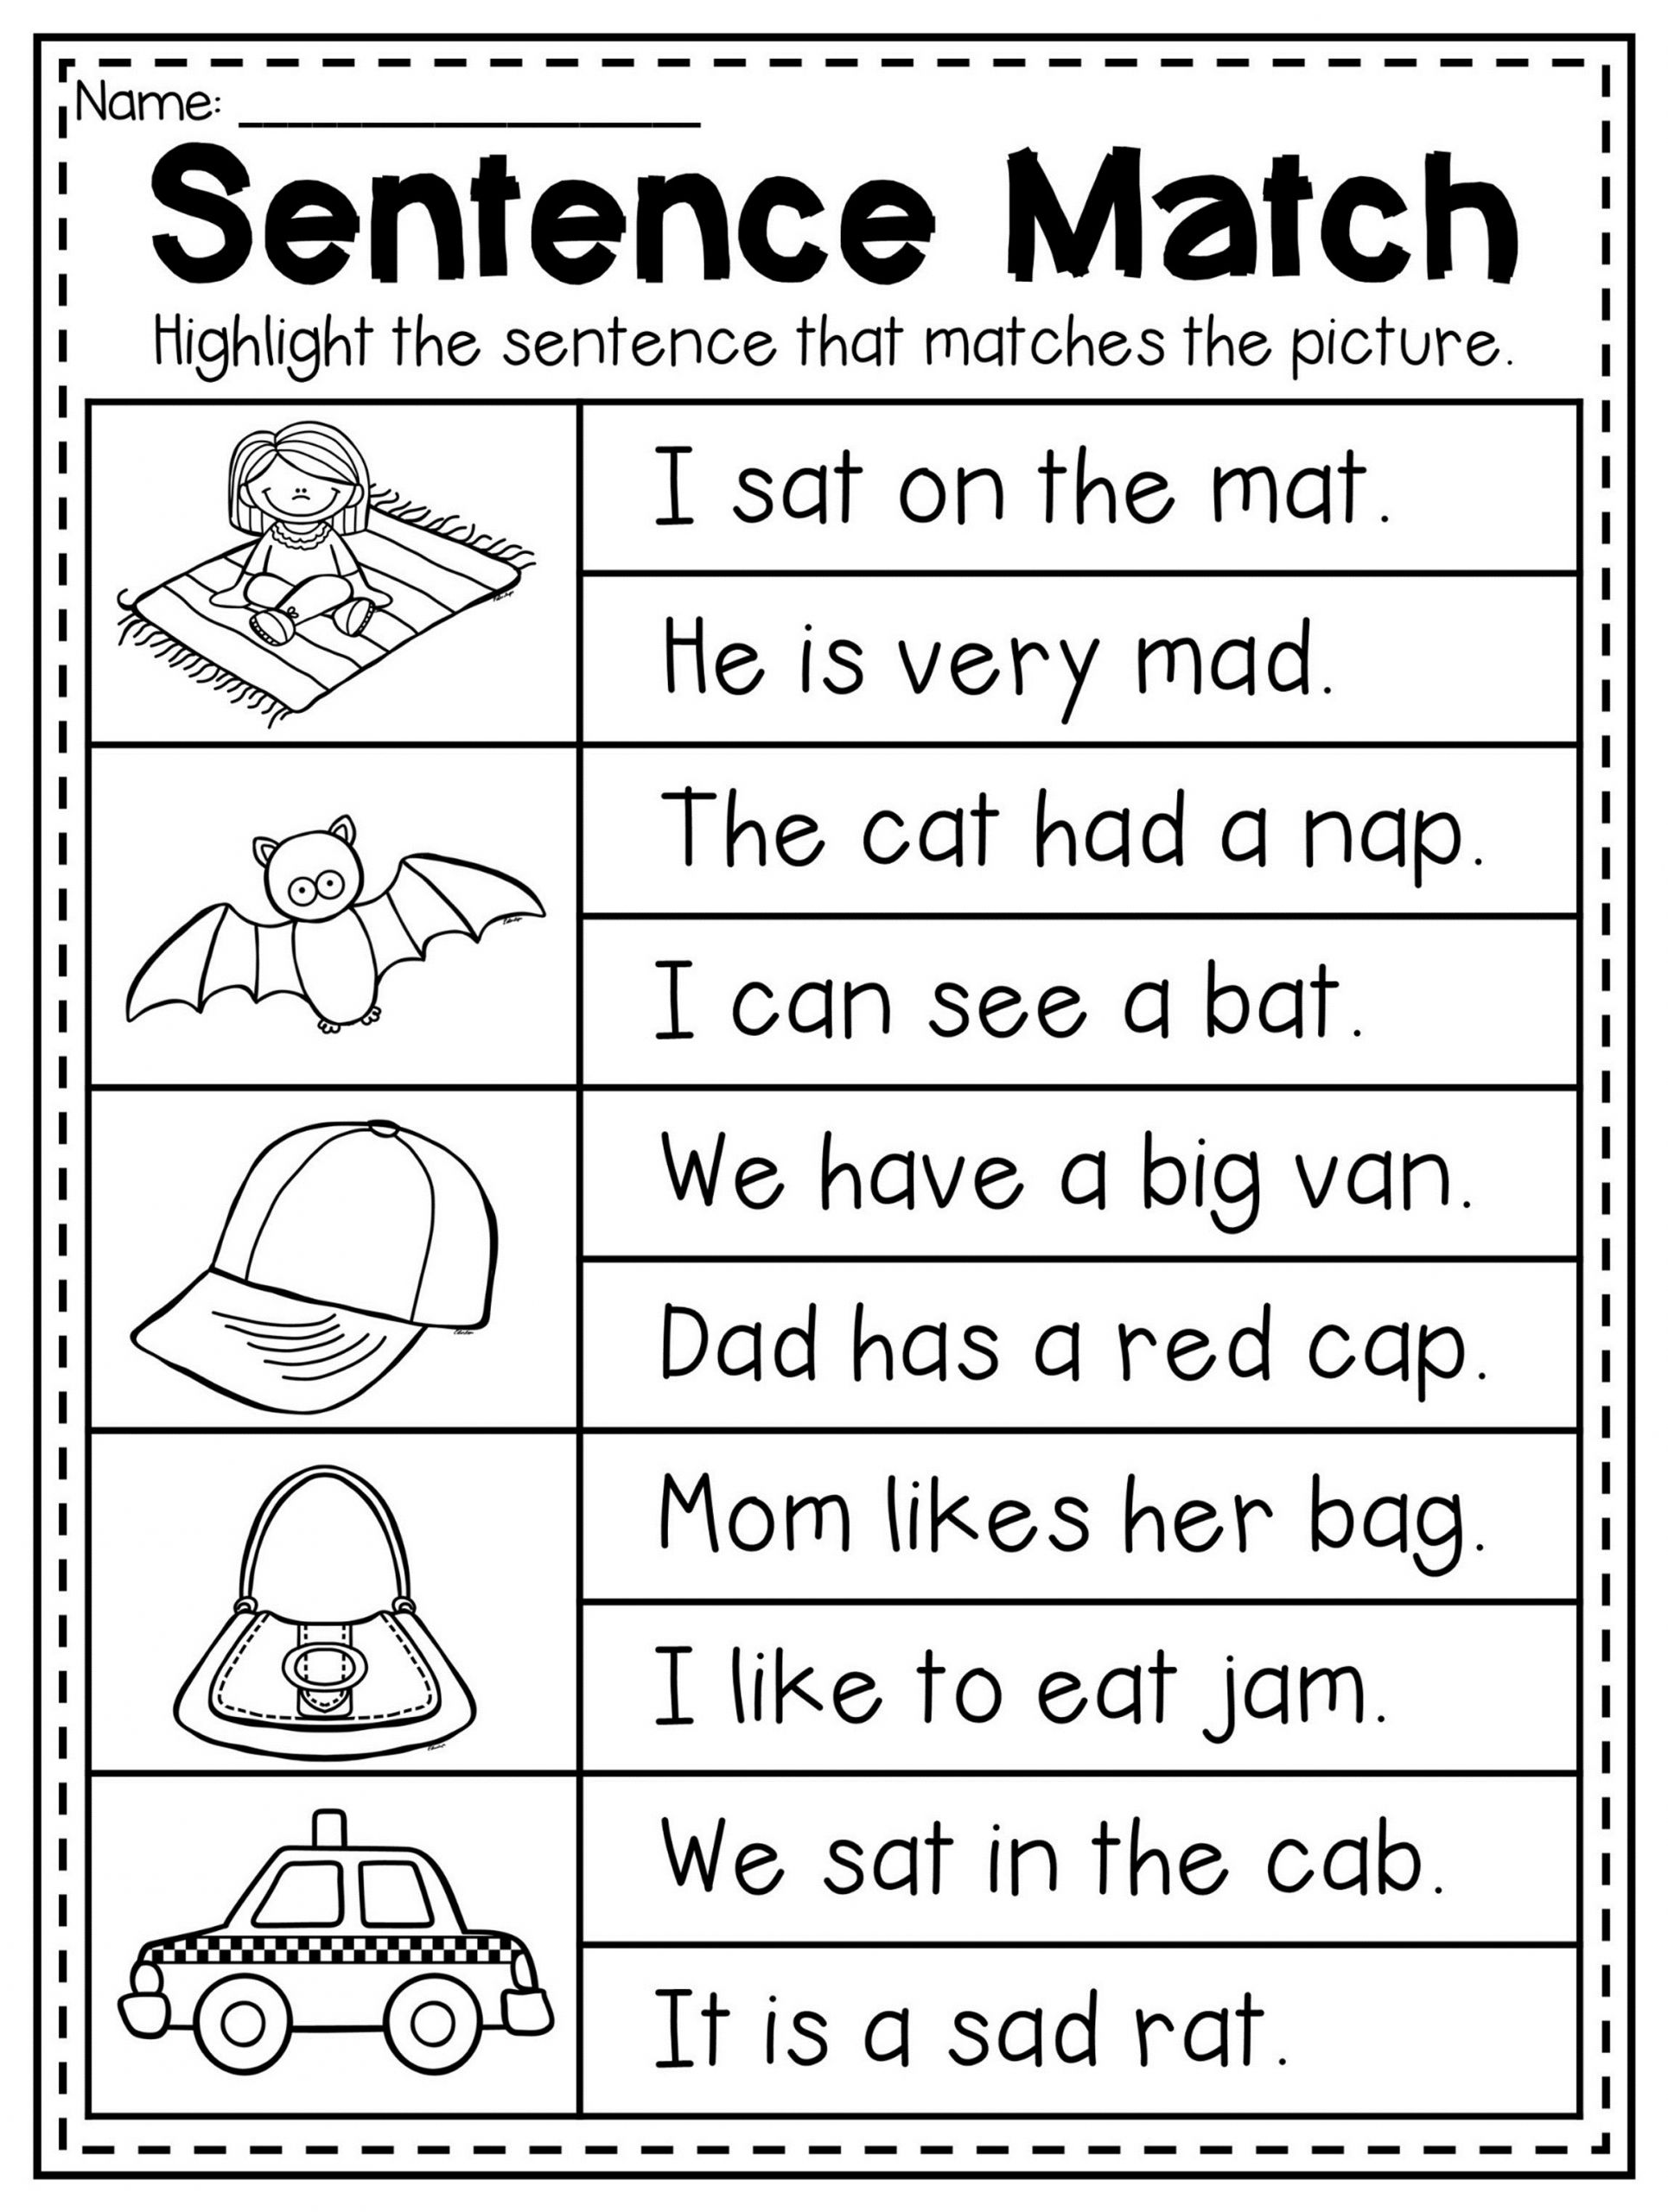 5 Free Math Worksheets Second Grade 2 Subtraction Subtract